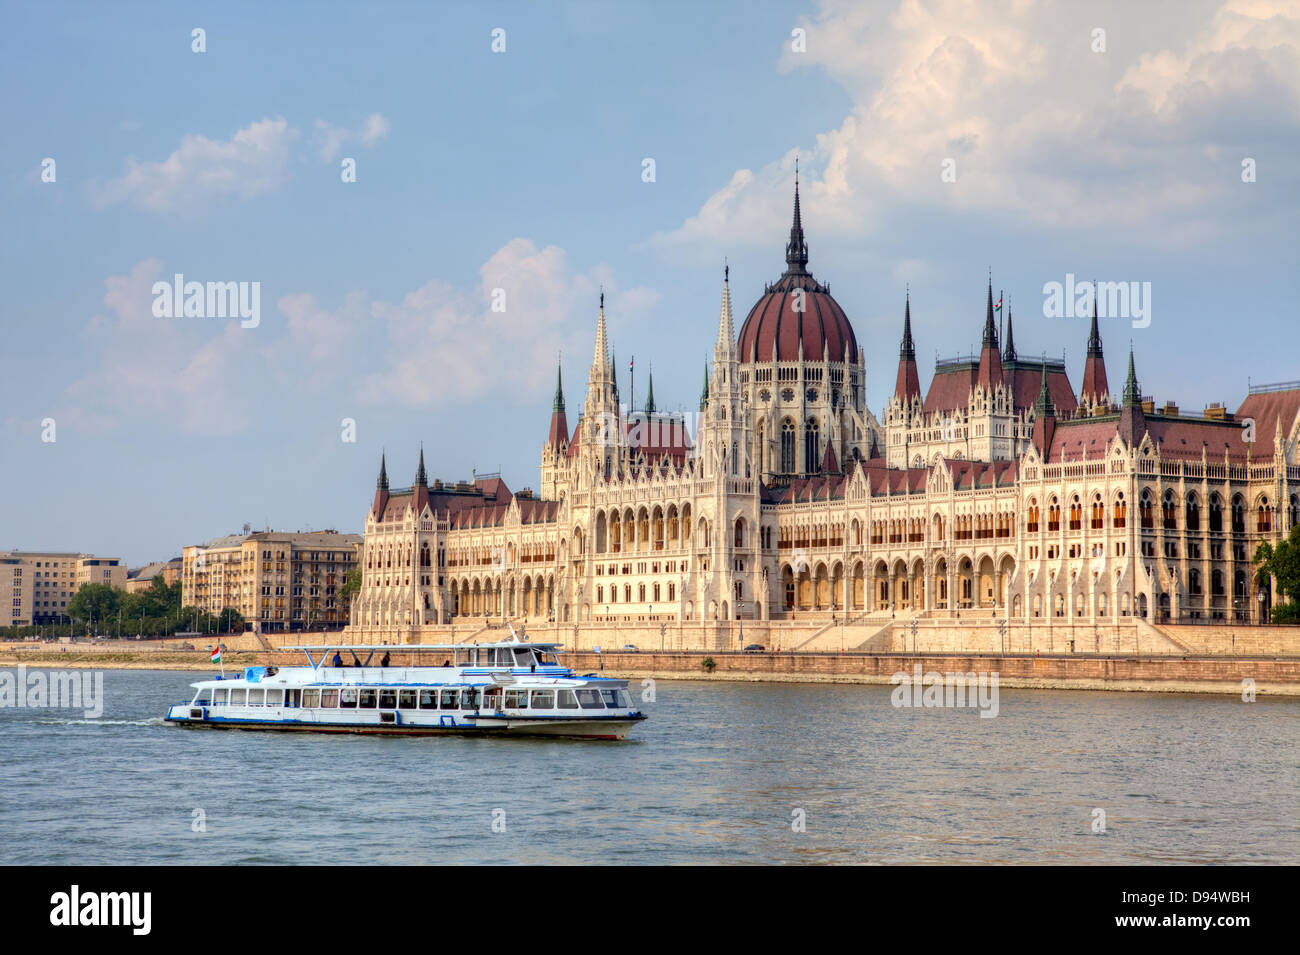 Hungary's Parliament is the largest building in the country and a symbol of Budapest. - Stock Image